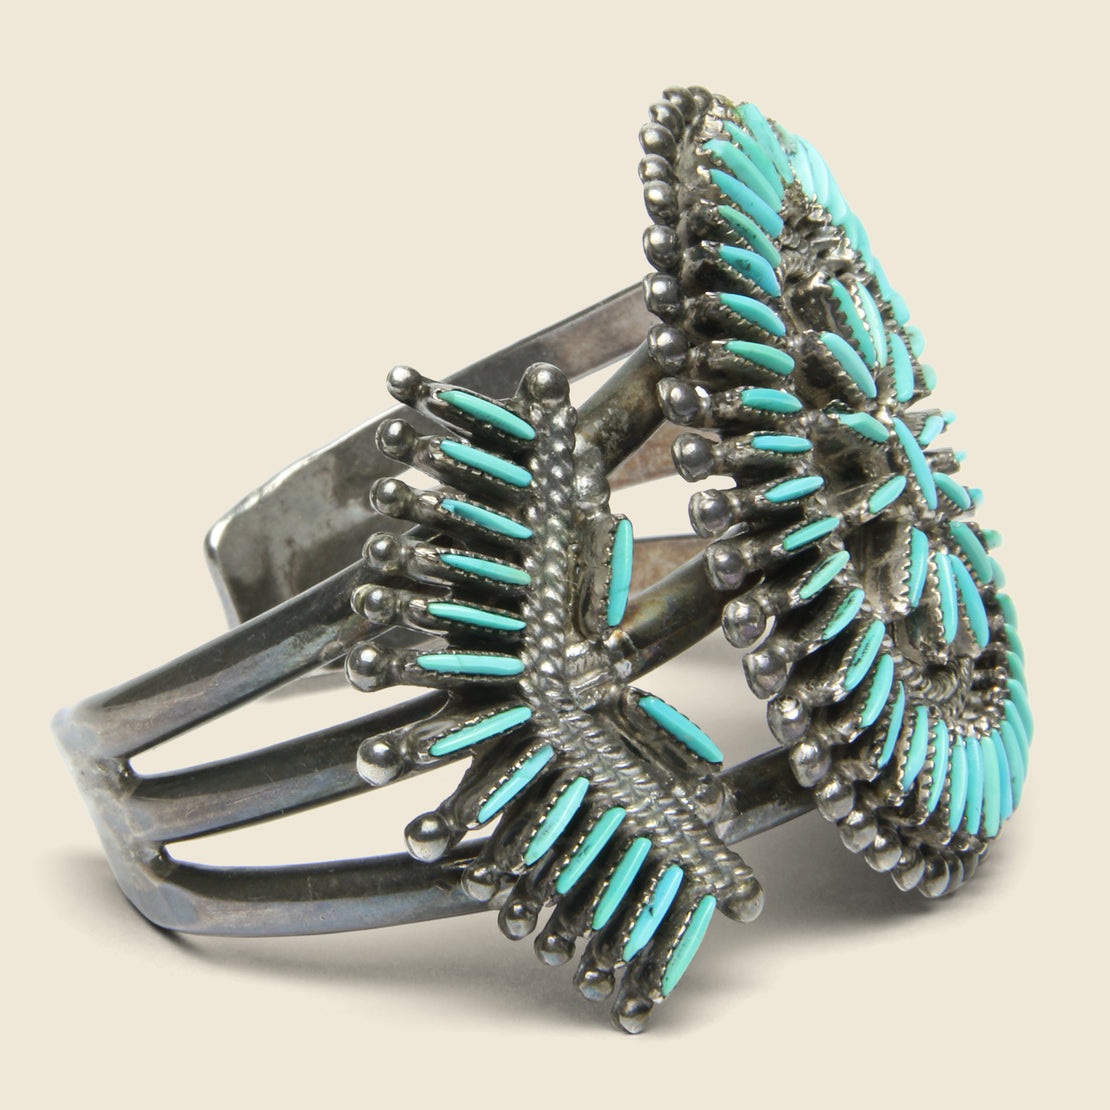 J.S. Bellson Petit Point Zuni Cuff - Sterling/Turquoise